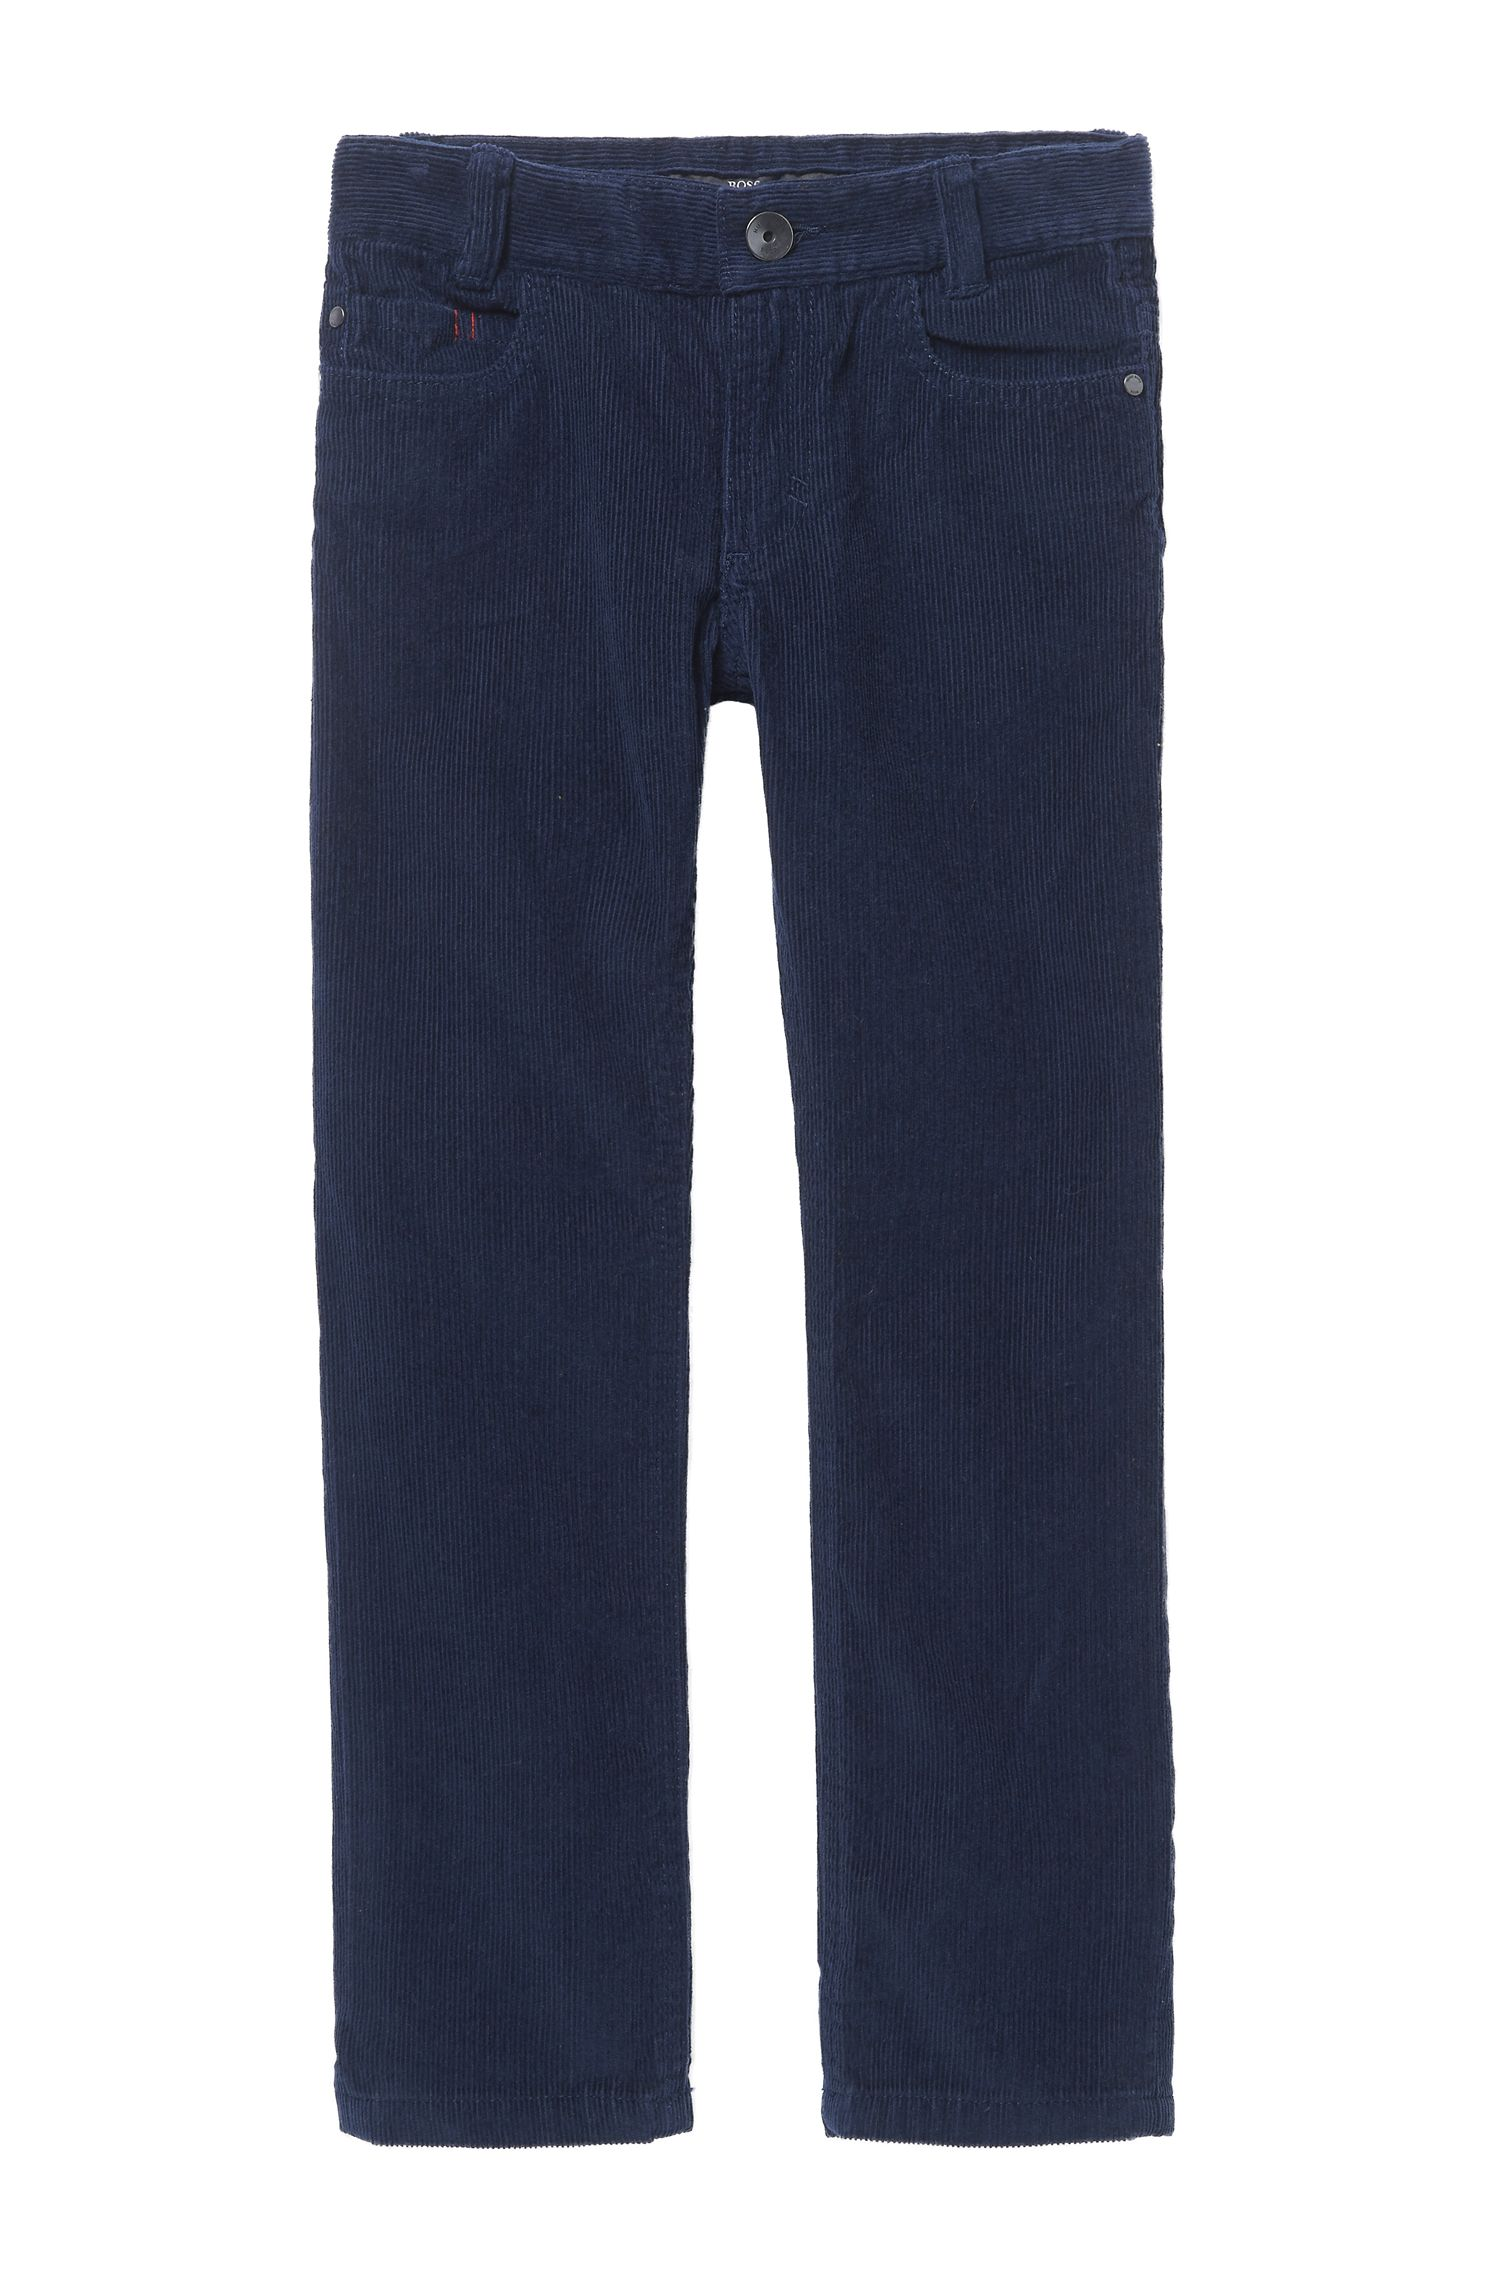 'J24419' | Boys Stretch Cotton Corduroy Trousers